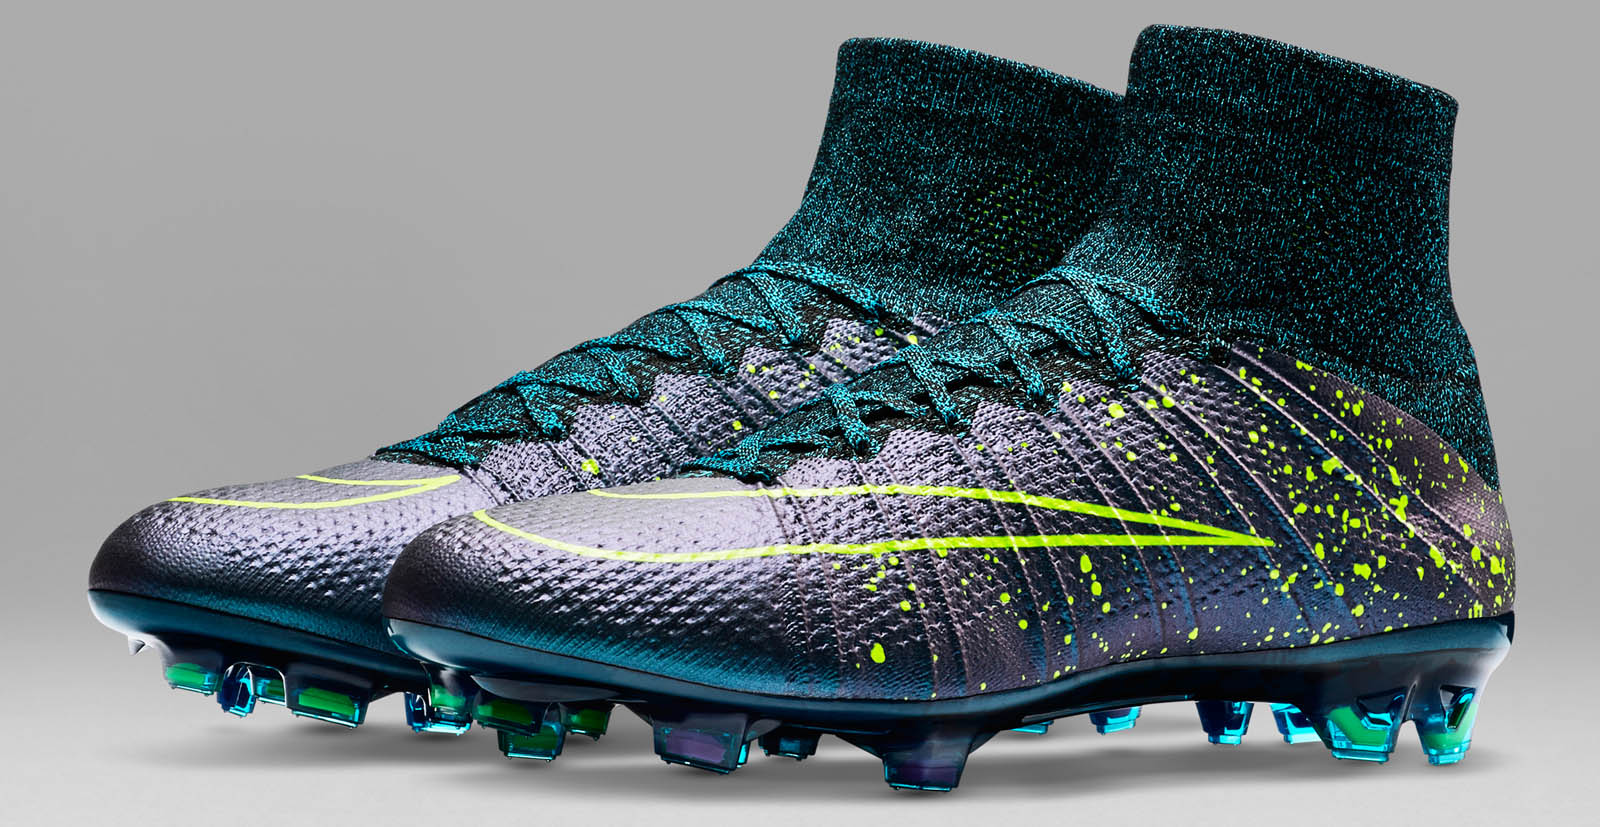 405efbe94 Players such as Arturo Vidal, Alexis Sanchez, Marcos Rojo and Kevin De  Bruyne will lace up in the Squadron Blue Nike Mercurial Superfly Football  Boots from ...